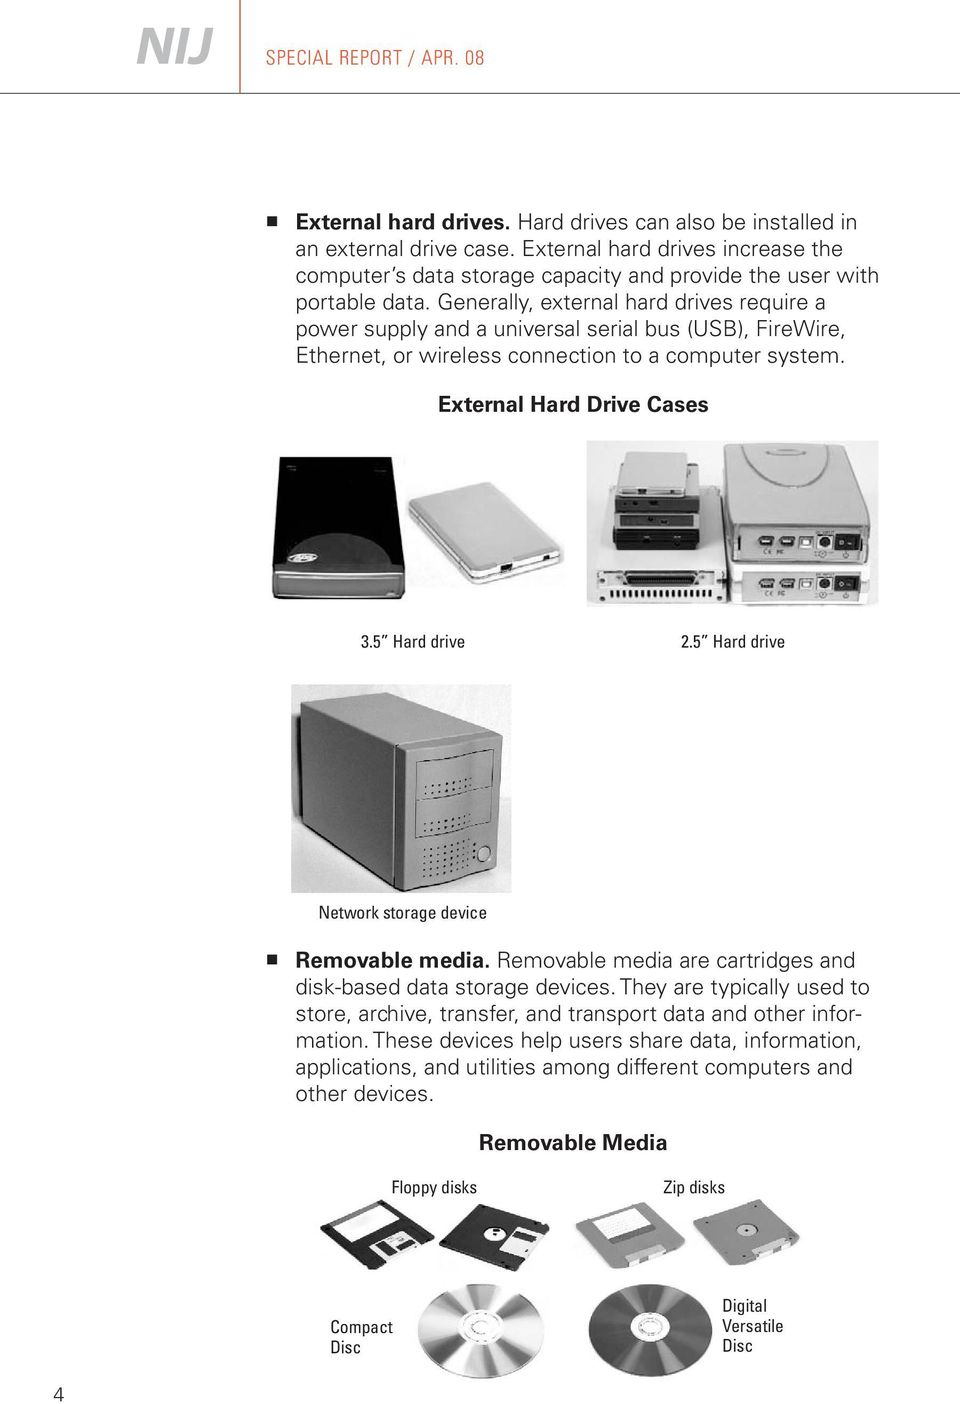 Generally, external hard drives require a power supply and a universal serial bus (USB), FireWire, Ethernet, or wireless connection to a computer system. External Hard Drive Cases 3.5 Hard drive 2.